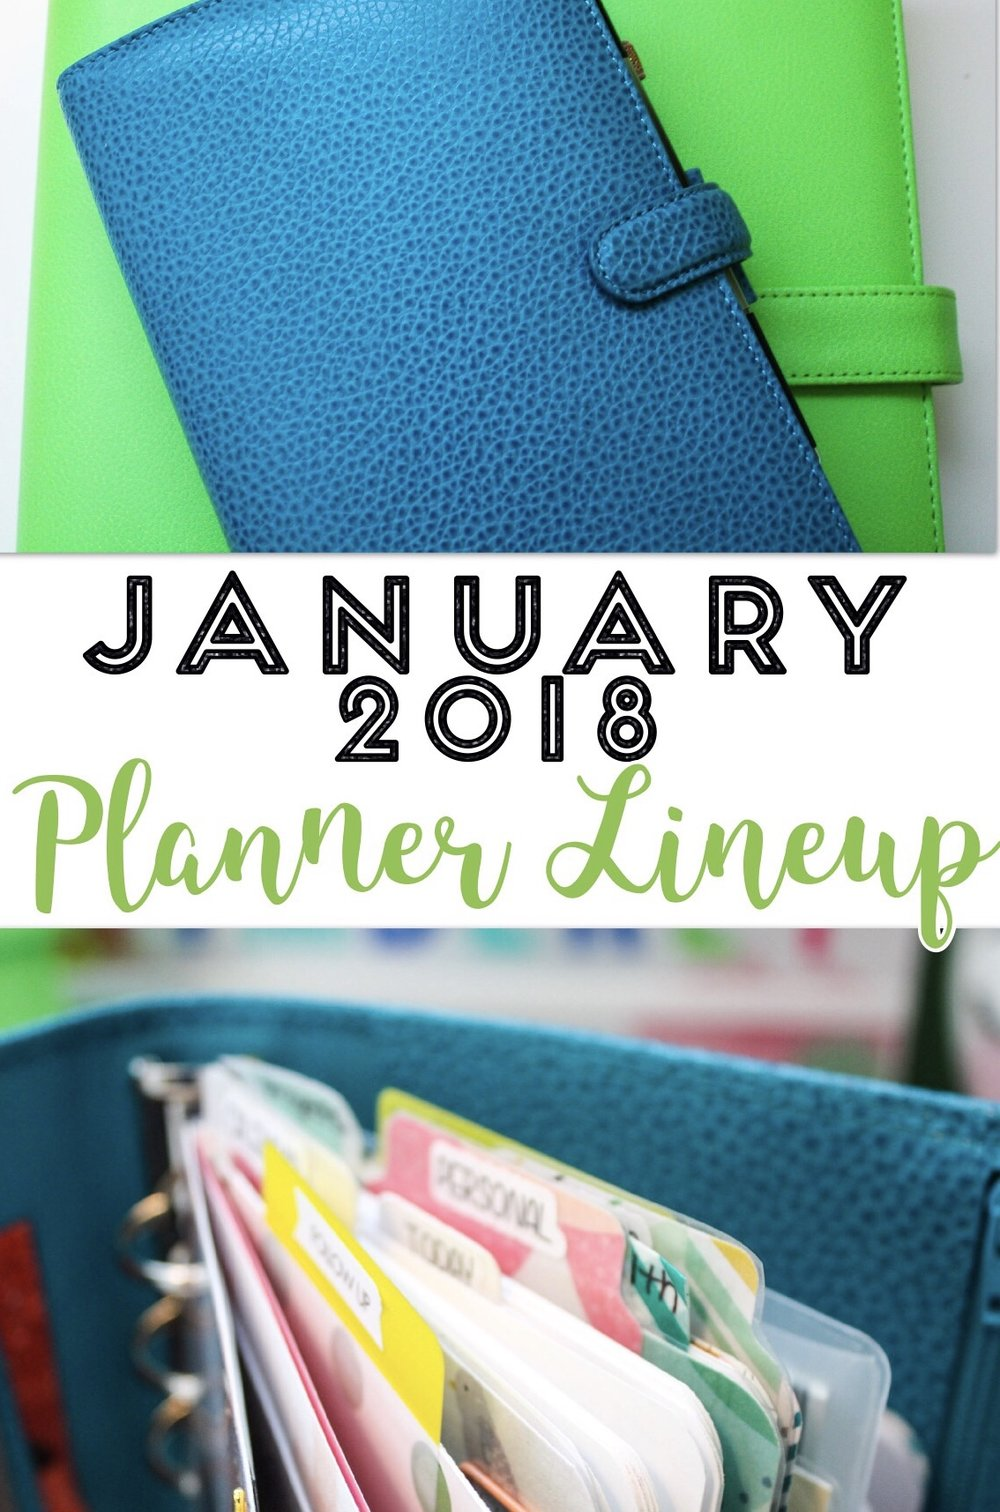 January 2018 Planner Lineup